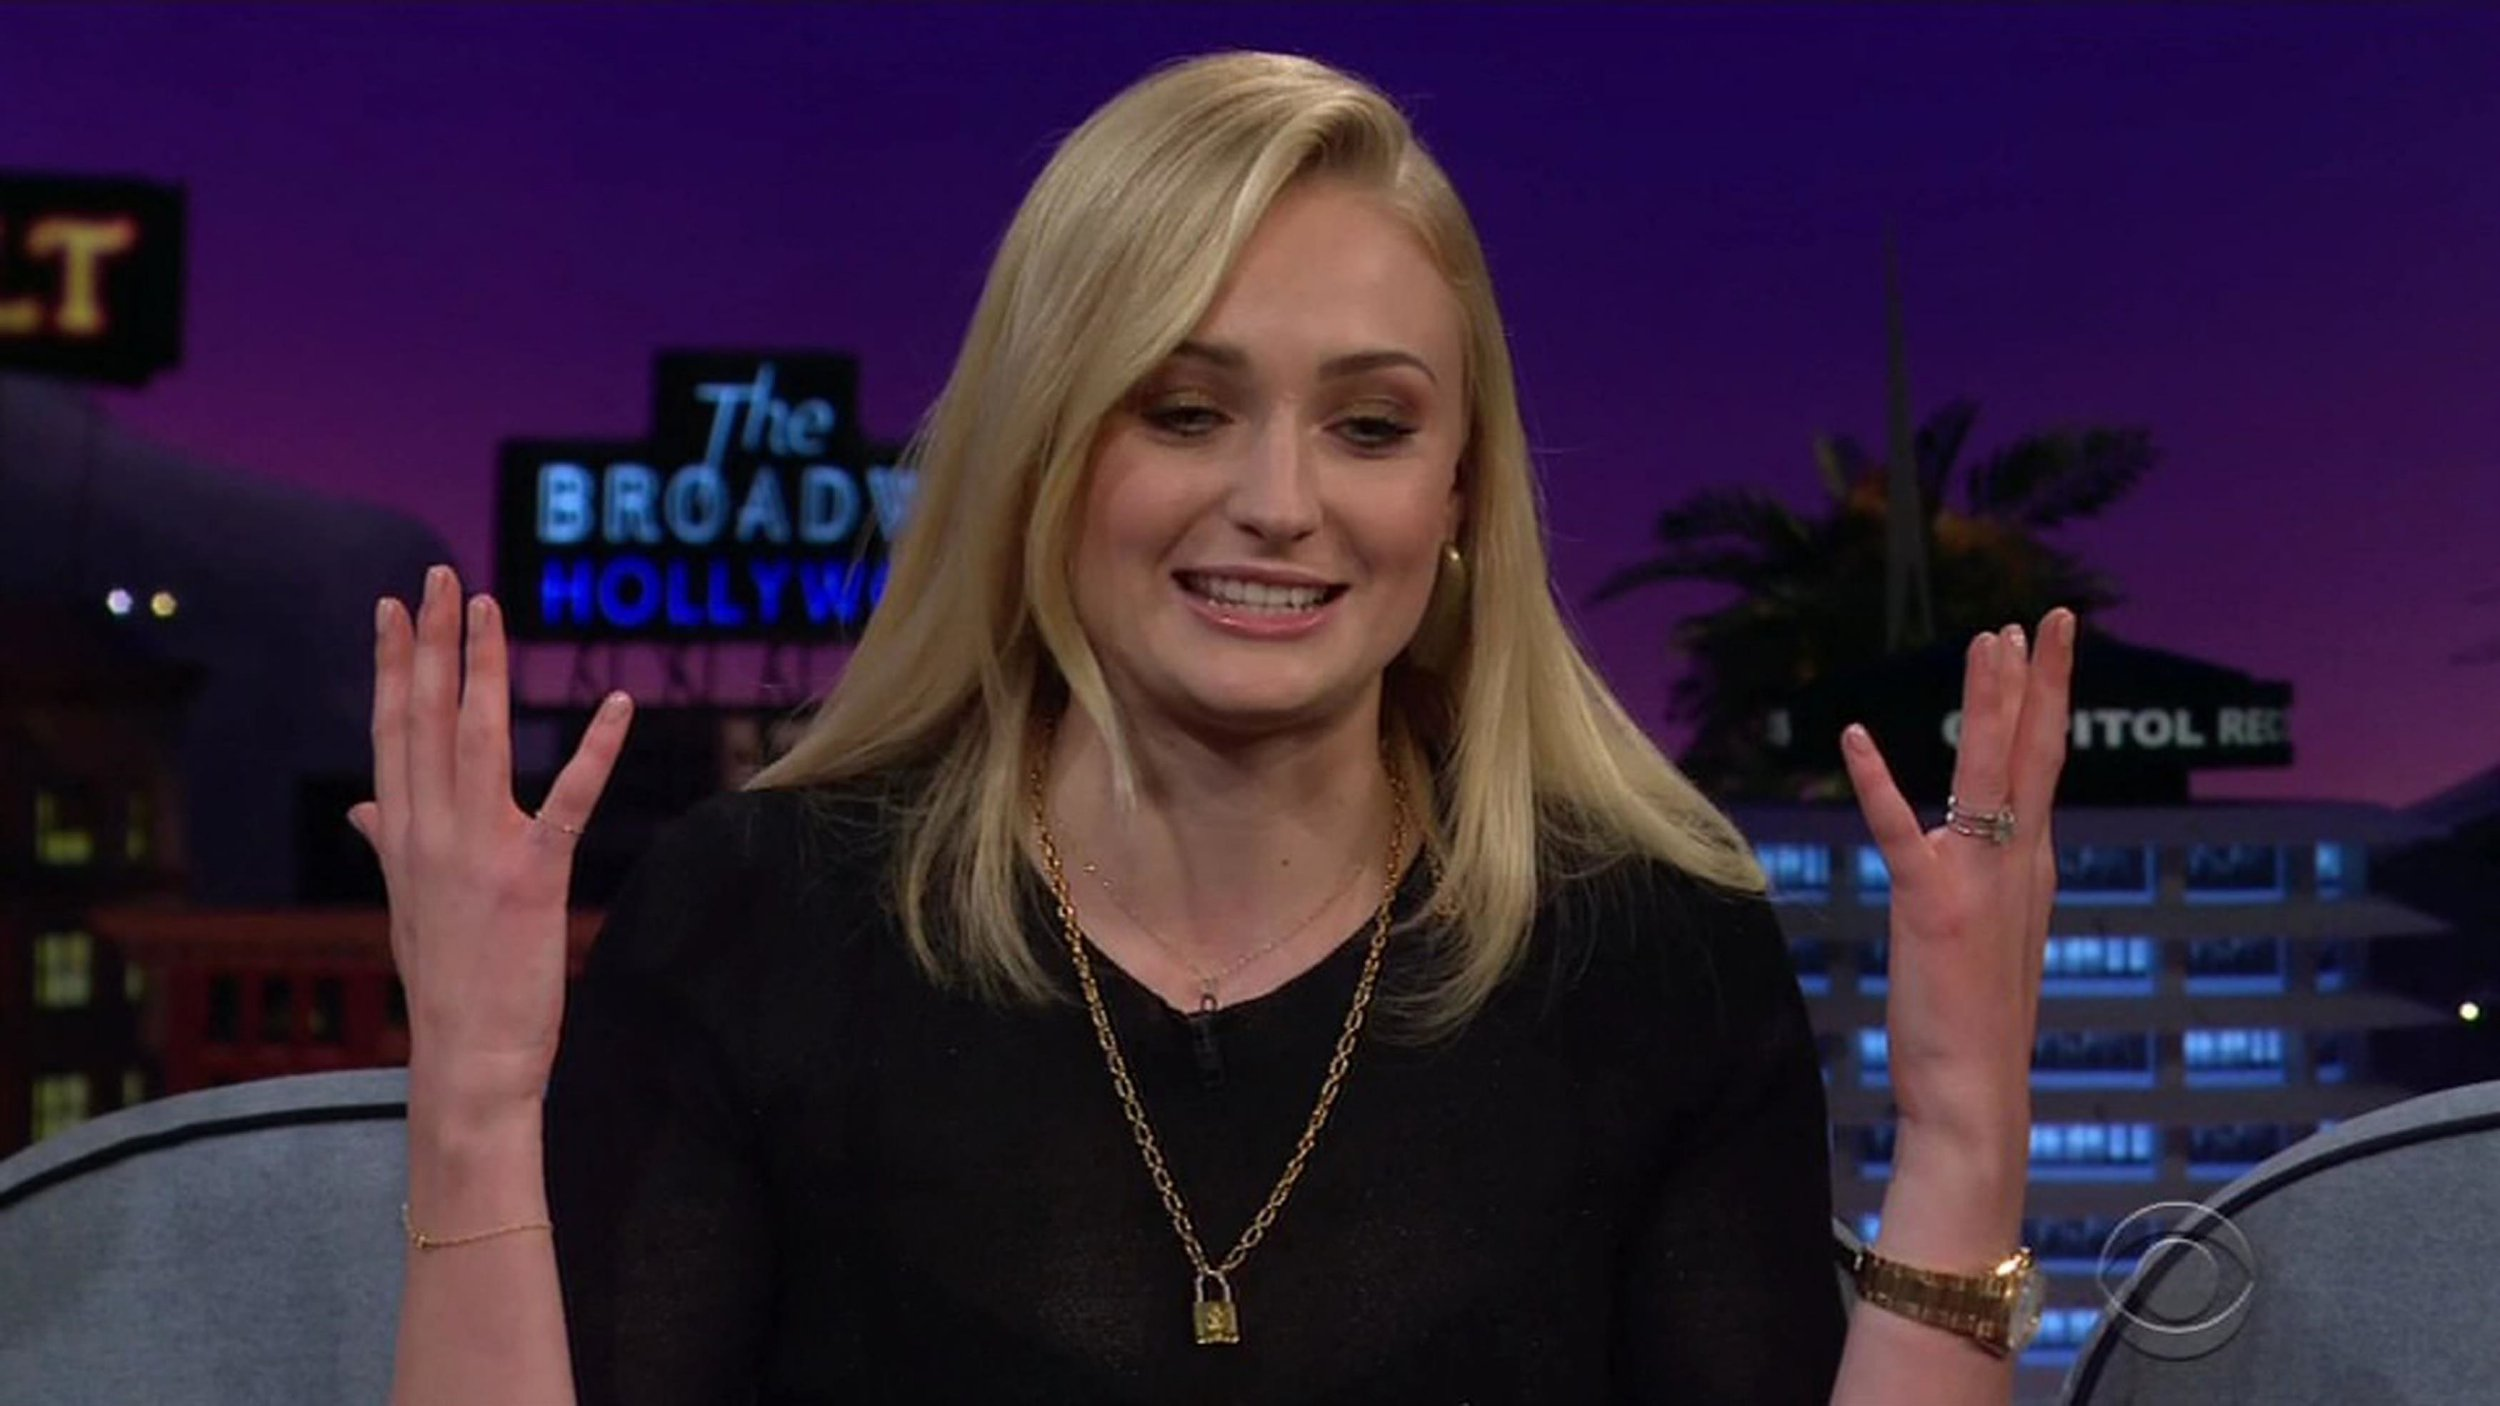 """BGUK_1352609 - ** RIGHTS: WORLDWIDE EXCEPT IN UNITED STATES ** Los Angeles, CA - Sophie Turner reveals on The Late Late Show she hid in a closet and cried after fiance Joe Jonas introduced her to her crush Justin Bieber. The Games of Thrones actress laughed as she revealed that it wasn't Joe she lusted after as a teenager - instead she had the hots for pop superstar Justin Bieber. Corden showed the audience a photo of a teenage Turner standing next to a cardboard cutout of Bieber. """"I think that was the day after I finished my GCSE exams,"""" Turner explained. The actress then revealed the cutout was actually created by her mother, who seemed more than aware of her daughter's fan-filled obsession with all things concerning her crush. """"My mom, as a gift, for finishing my GCSEs, made a cardboard cutout of Justin Bieber and I together and I cried. I fell up the stairs and I cried,"""" Turner said. Years later, however, Turner would burst into years again when she found herself at a house in Miami where she ran into the Baby singer. """"I was told that Justin was there and I walked upstairs. And we were getting a tour of the house. And he was sat there shirtless,"""" Turner said before bursting out in giggles. """"I was like: 'Hi, nice to meet you, I'm Sophie'. Played it cool, then ran into the closet and cried for like, five minutes,"""" she explained. """"Then I came out with Joe and Justin goes: 'Yo, Joe, I heard you've got a new girl?' And Joe was like: 'Yeah, there she is. She's over there'."""" Turner then said that her response upon hearing Bieber ask about Joe's new girlfriend was quite an embarrassing moment. She recalls sticking her tongue out between two fingers before demonstrating the act for Corden to see, leaving a cheer of laughter among the crowd. *BACKGRID DOES NOT CLAIM ANY COPYRIGHT OR LICENSE IN THE ATTACHED MATERIAL. ANY DOWNLOADING FEES CHARGED BY BACKGRID ARE FOR BACKGRID'S SERVICES ONLY, AND DO NOT, NOR ARE THEY INTENDED TO, CONVEY TO THE USER ANY COPYRIGHT OR LICENSE I"""